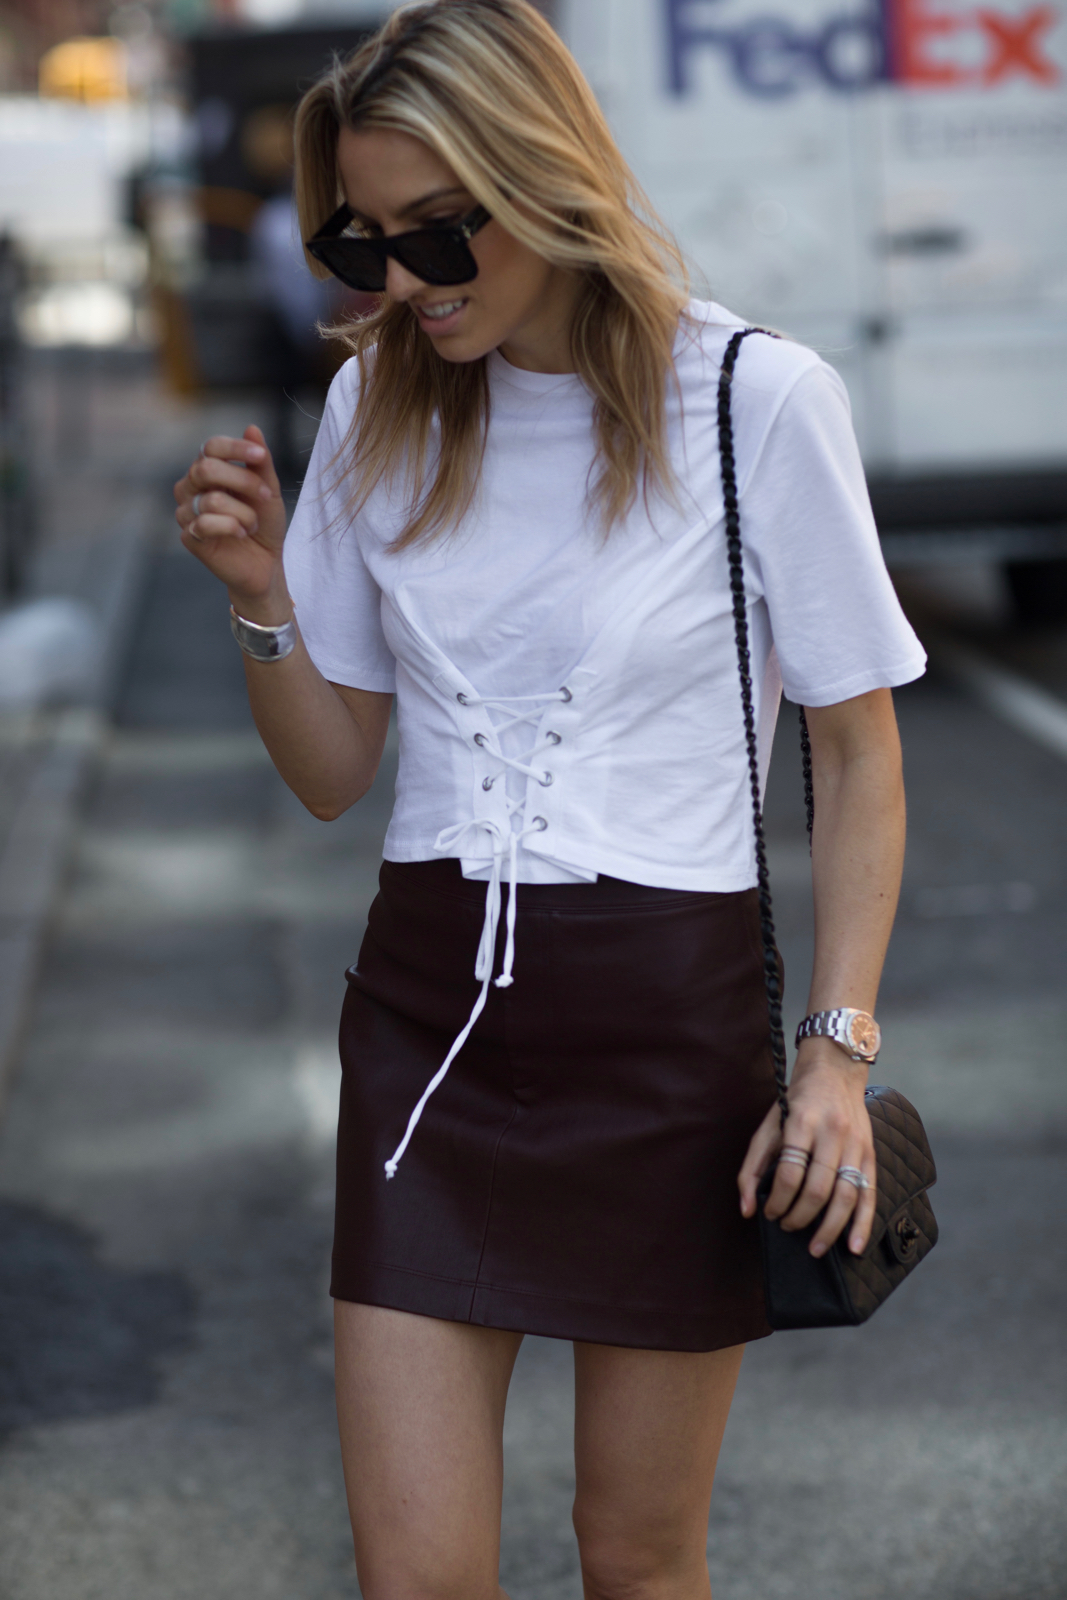 Self-Portrait x Robert Clergerie pumps, Corset tee, leather skirt, givenchy sunglasses, Chanel, spring trends